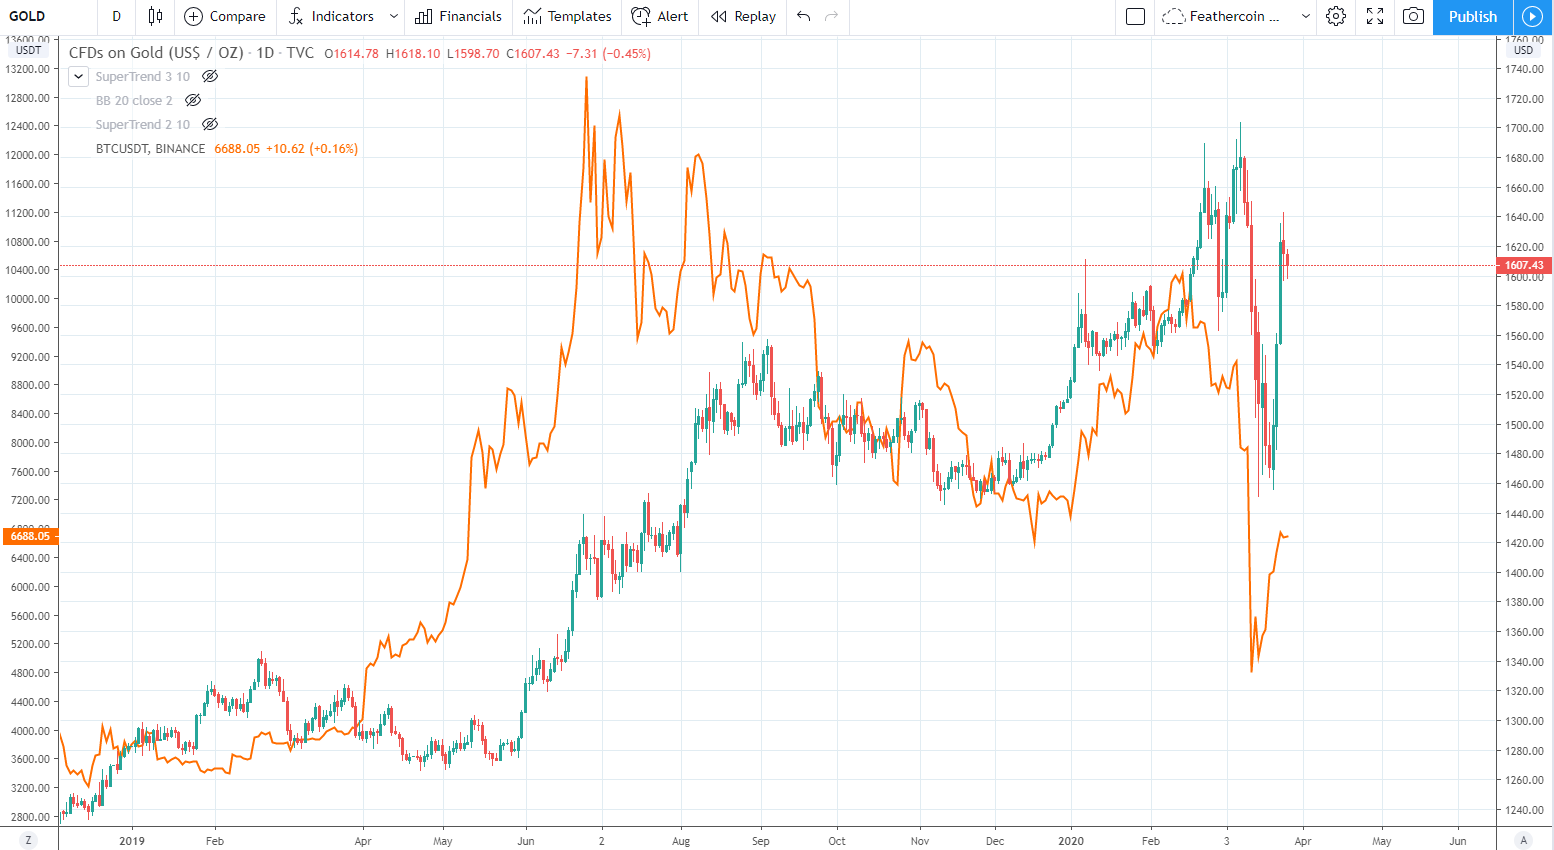 Gold:BTC Correlation March 2020